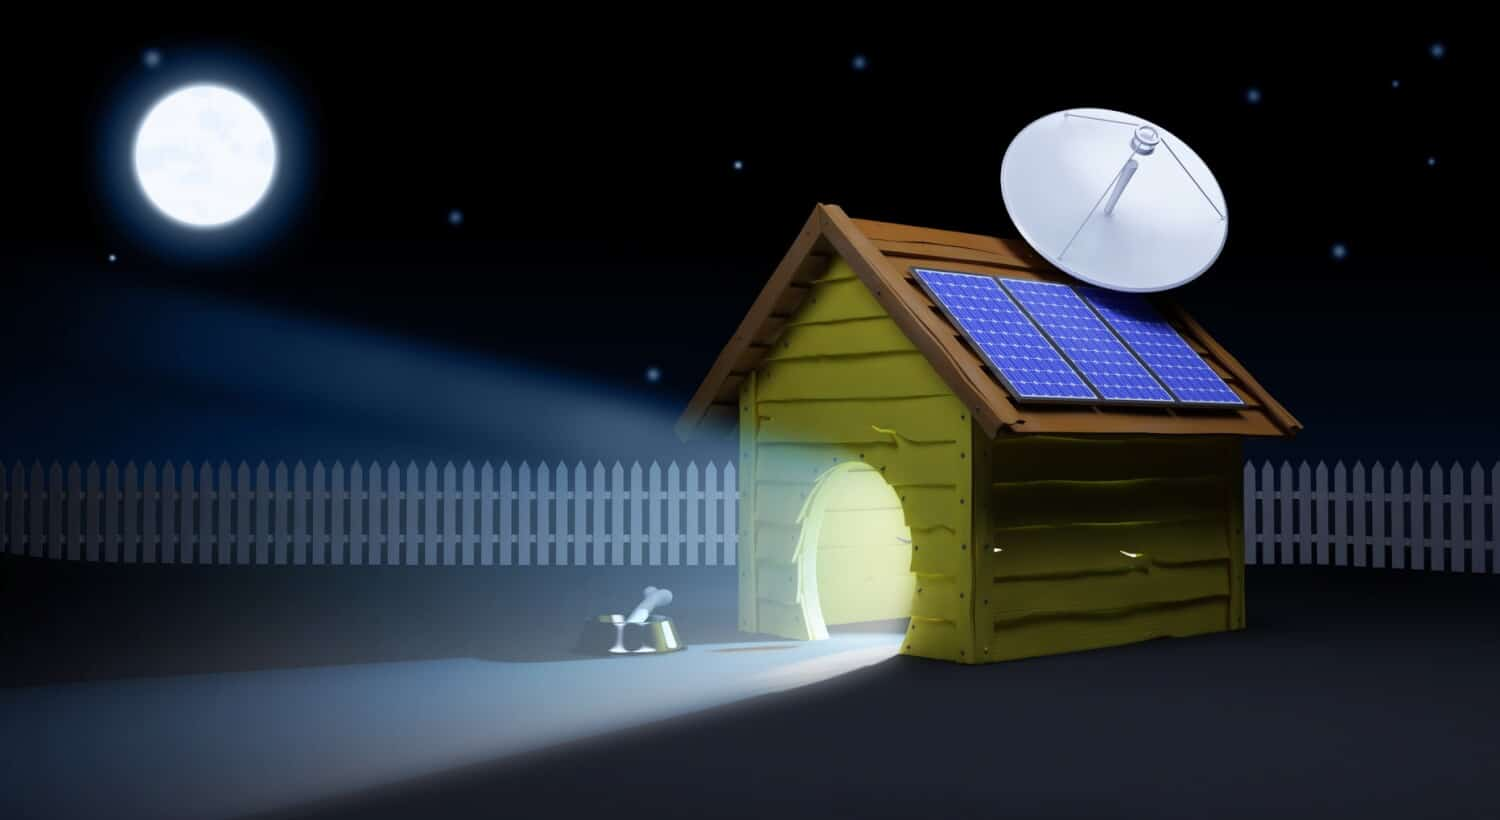 Illustration of luxury pet expenses: high tech dog house with solar panel and satellite dish on roof and interior lighting